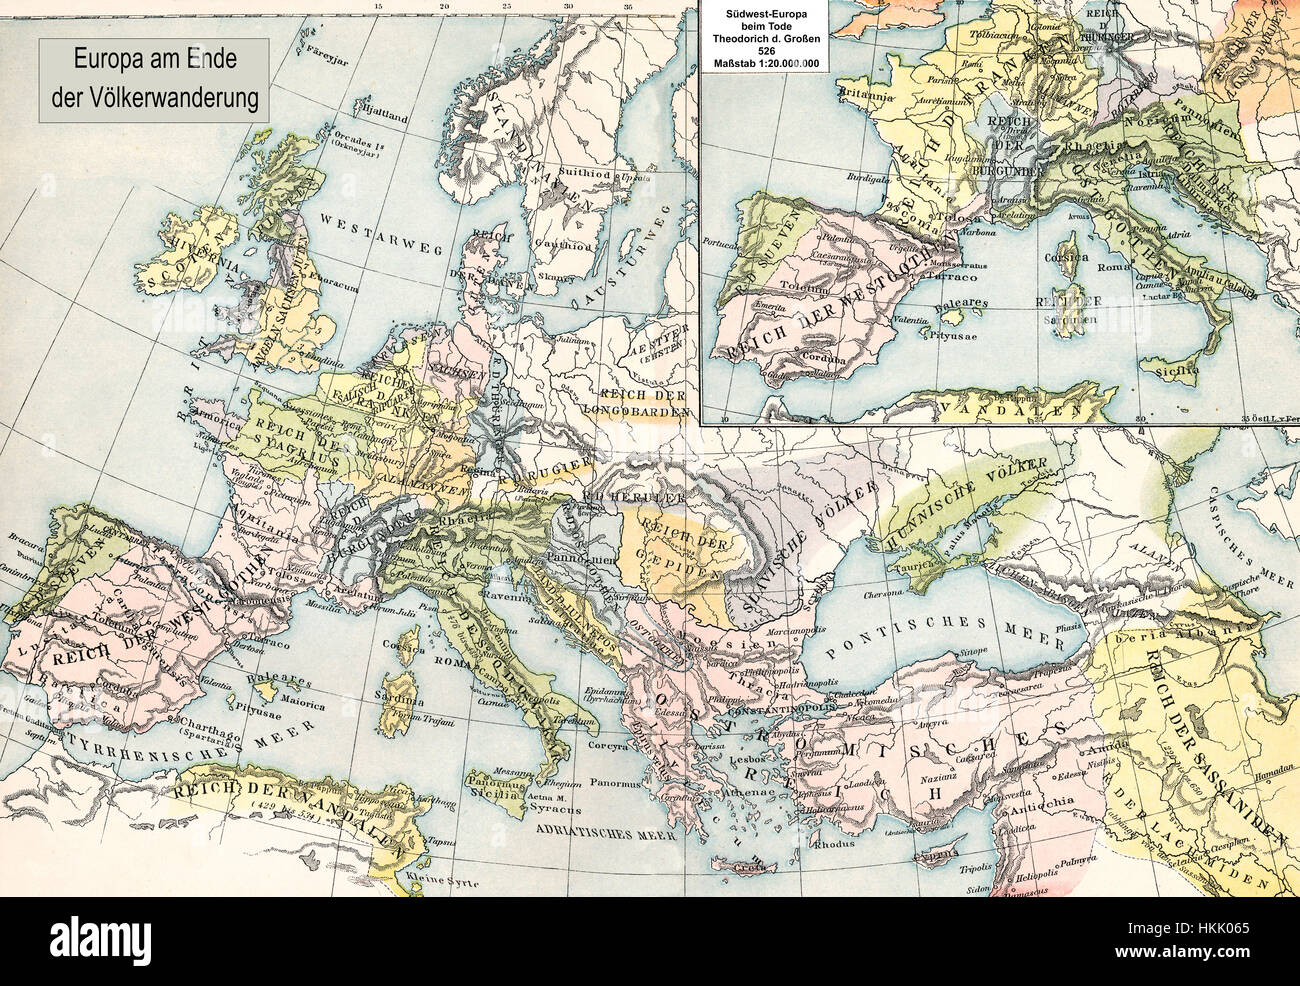 Historical map, the end of Migration Period in Europe - Stock Image